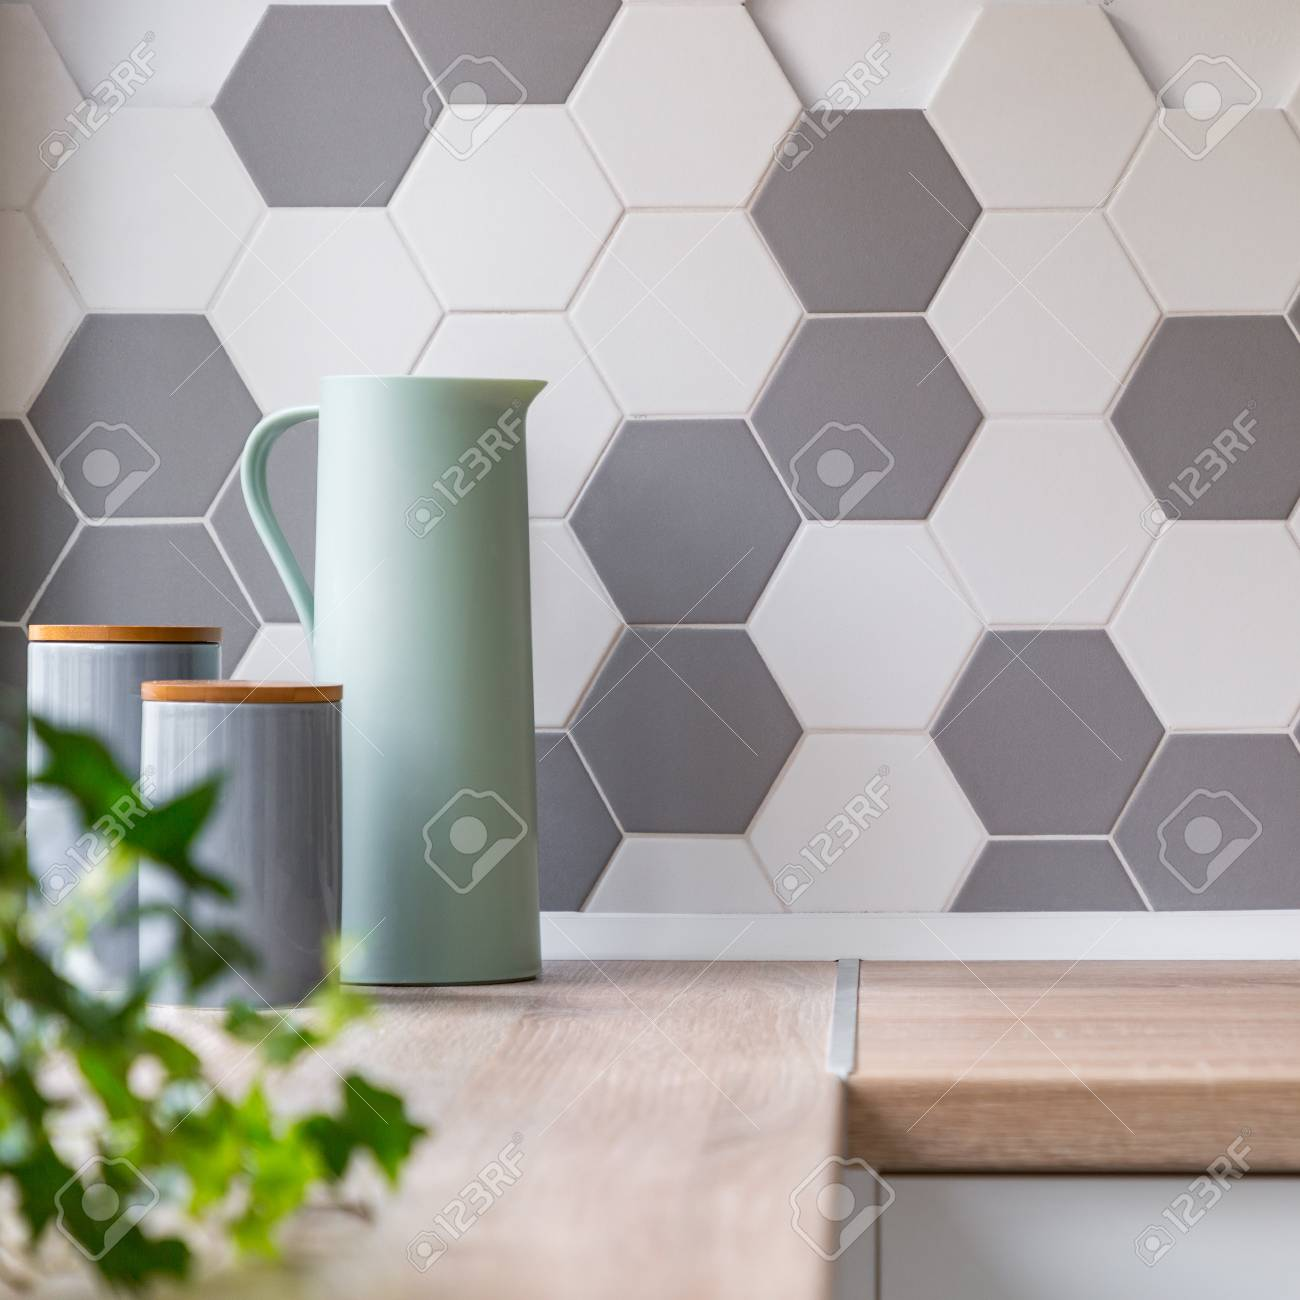 - Kitchen With Honeycomb White And Grey Wall Tiles, Wooden Worktop